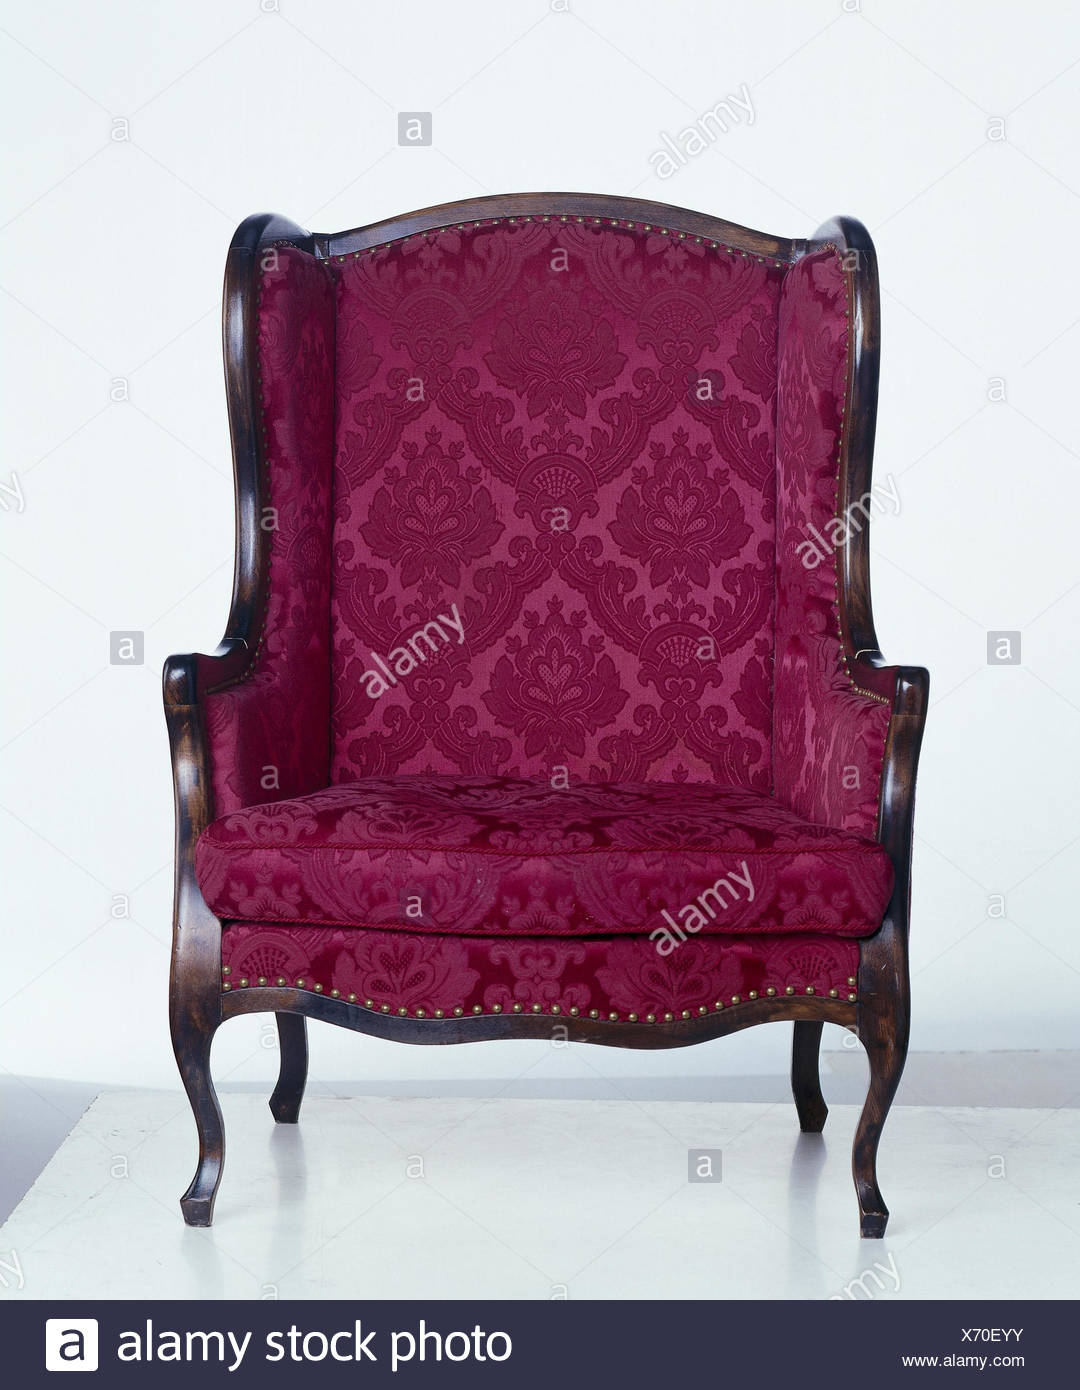 Armchair, red, St. furniture, period furnitures, upholstered chairs, antique,  seat piece furniture, chair, product photography, Still life, studio, cut  out - Armchair, Red, St. Furniture, Period Furnitures, Upholstered Chairs